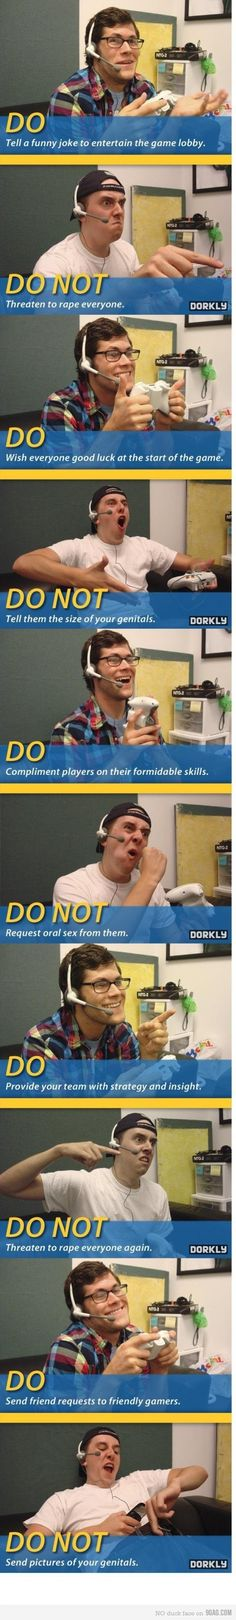 Some online game rules...hahaha!  The expressions on that one dude are too funny!!!